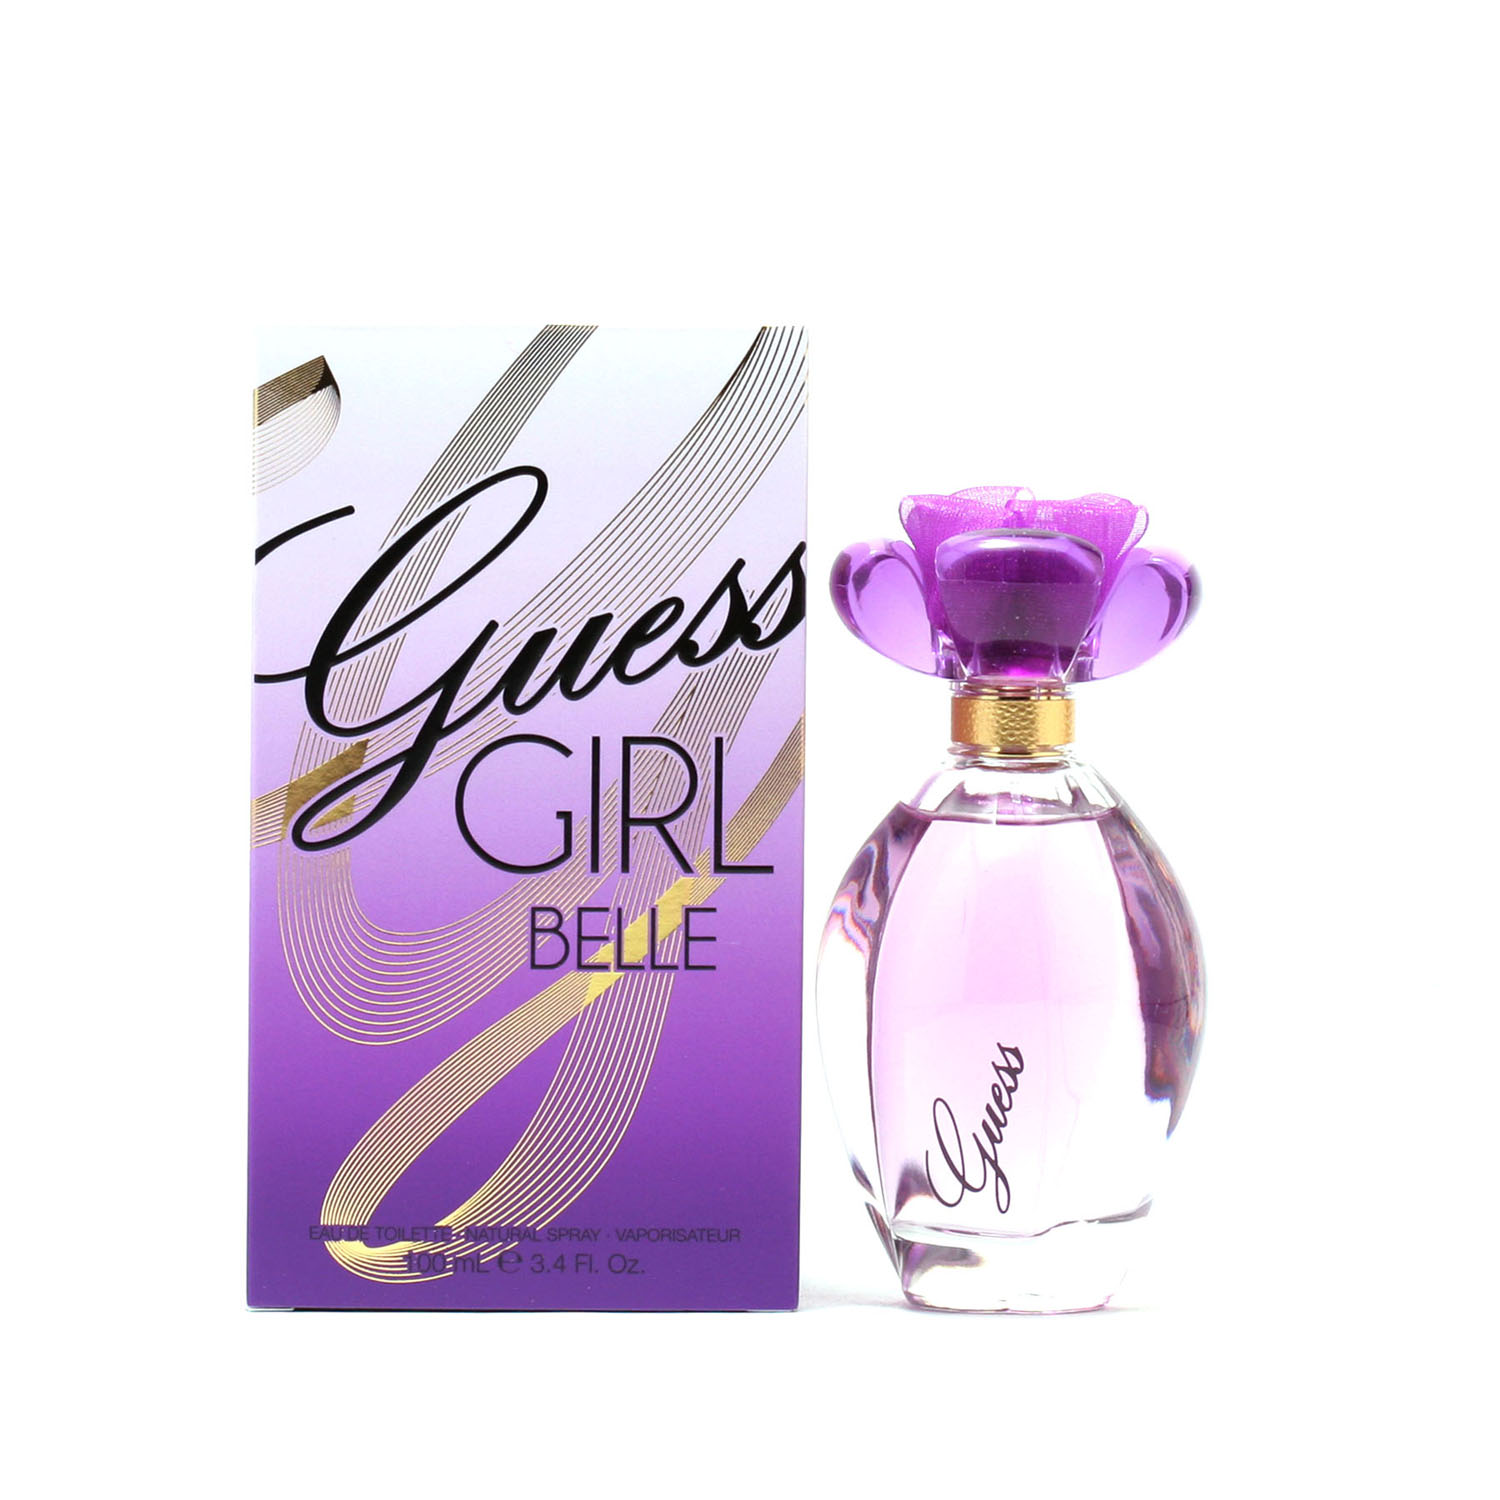 GUESS GIRL BELLE – EDT SPRAY - Guess - Perfume Discount